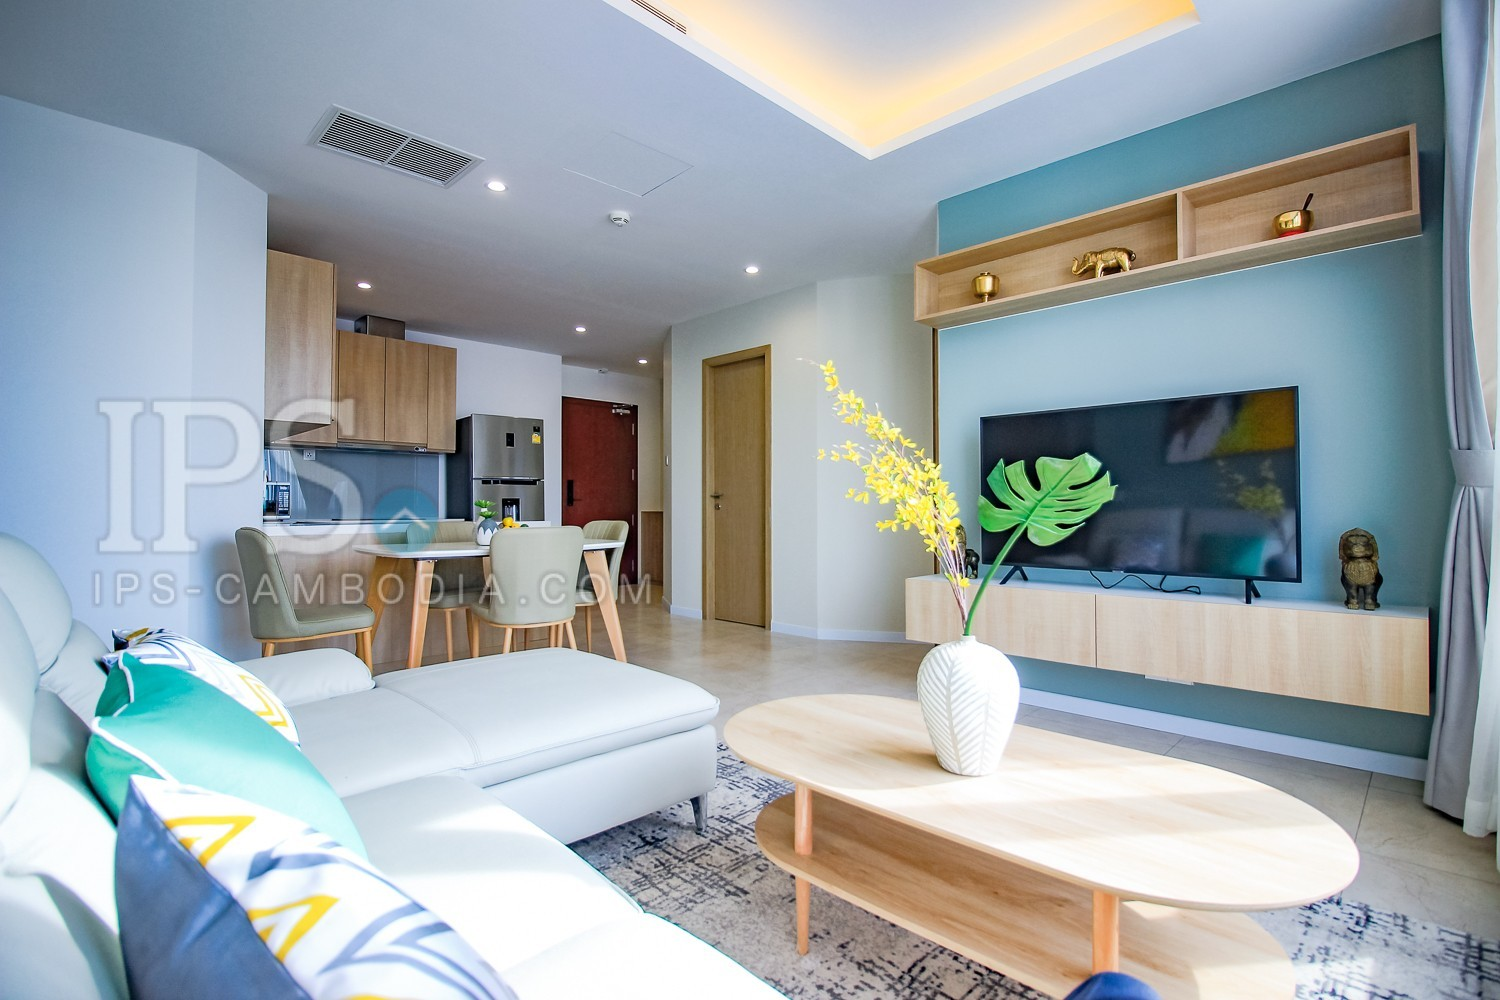 3 Bedroom Condo Unit For Rent - Tonle Bassac, Phnom Penh